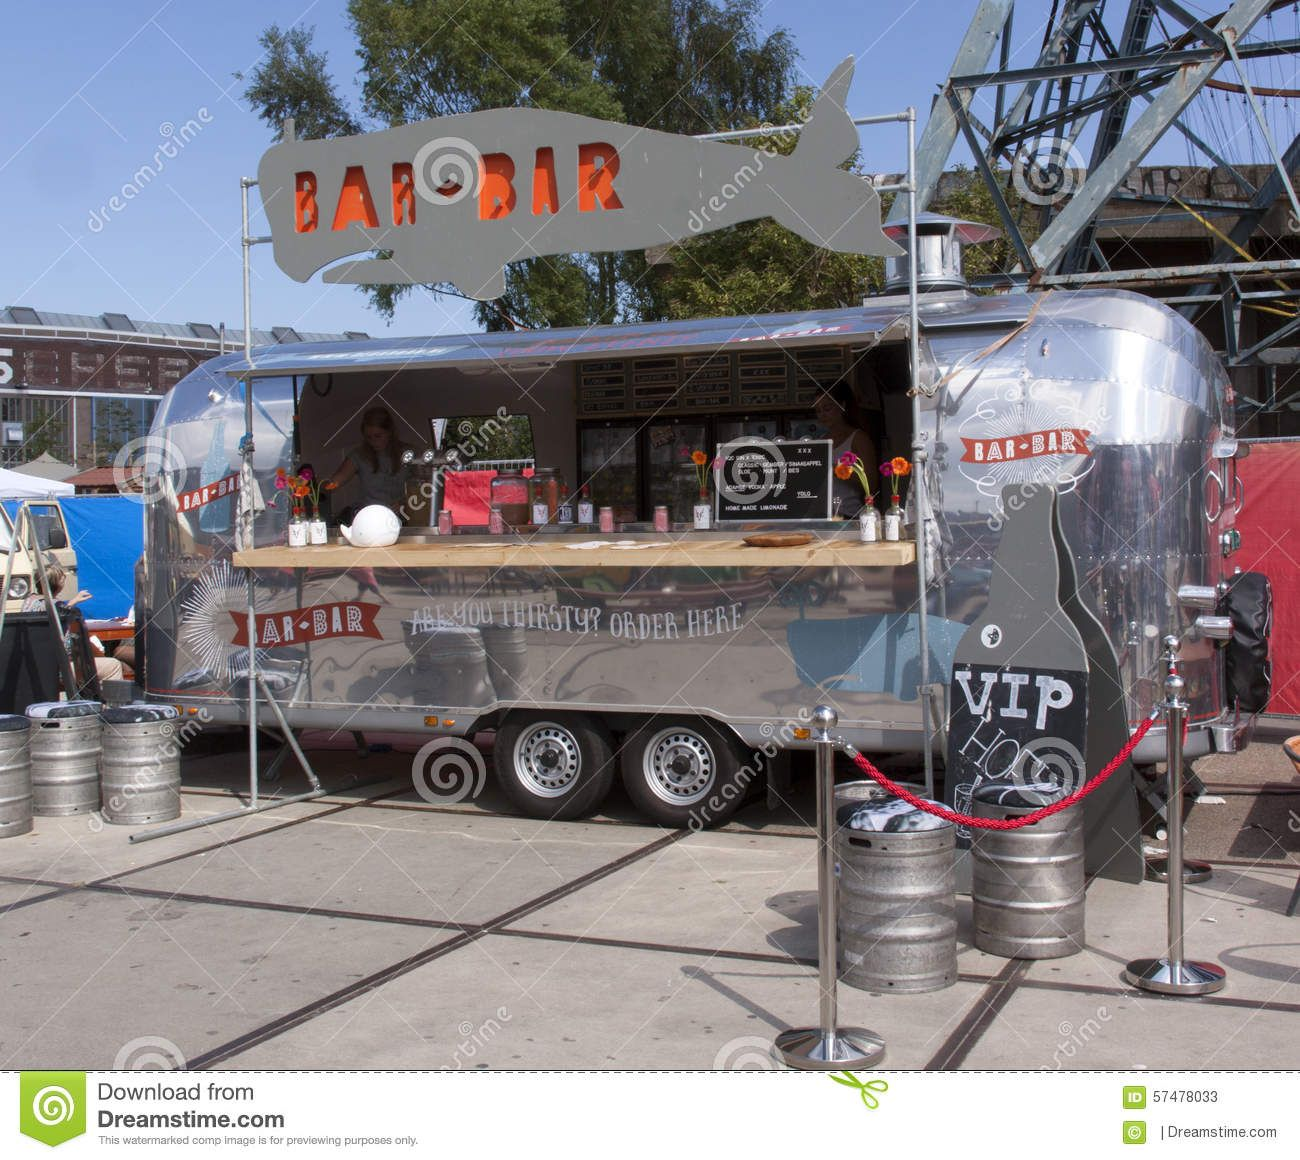 airstream caravan in use as a food truck in use as a bar